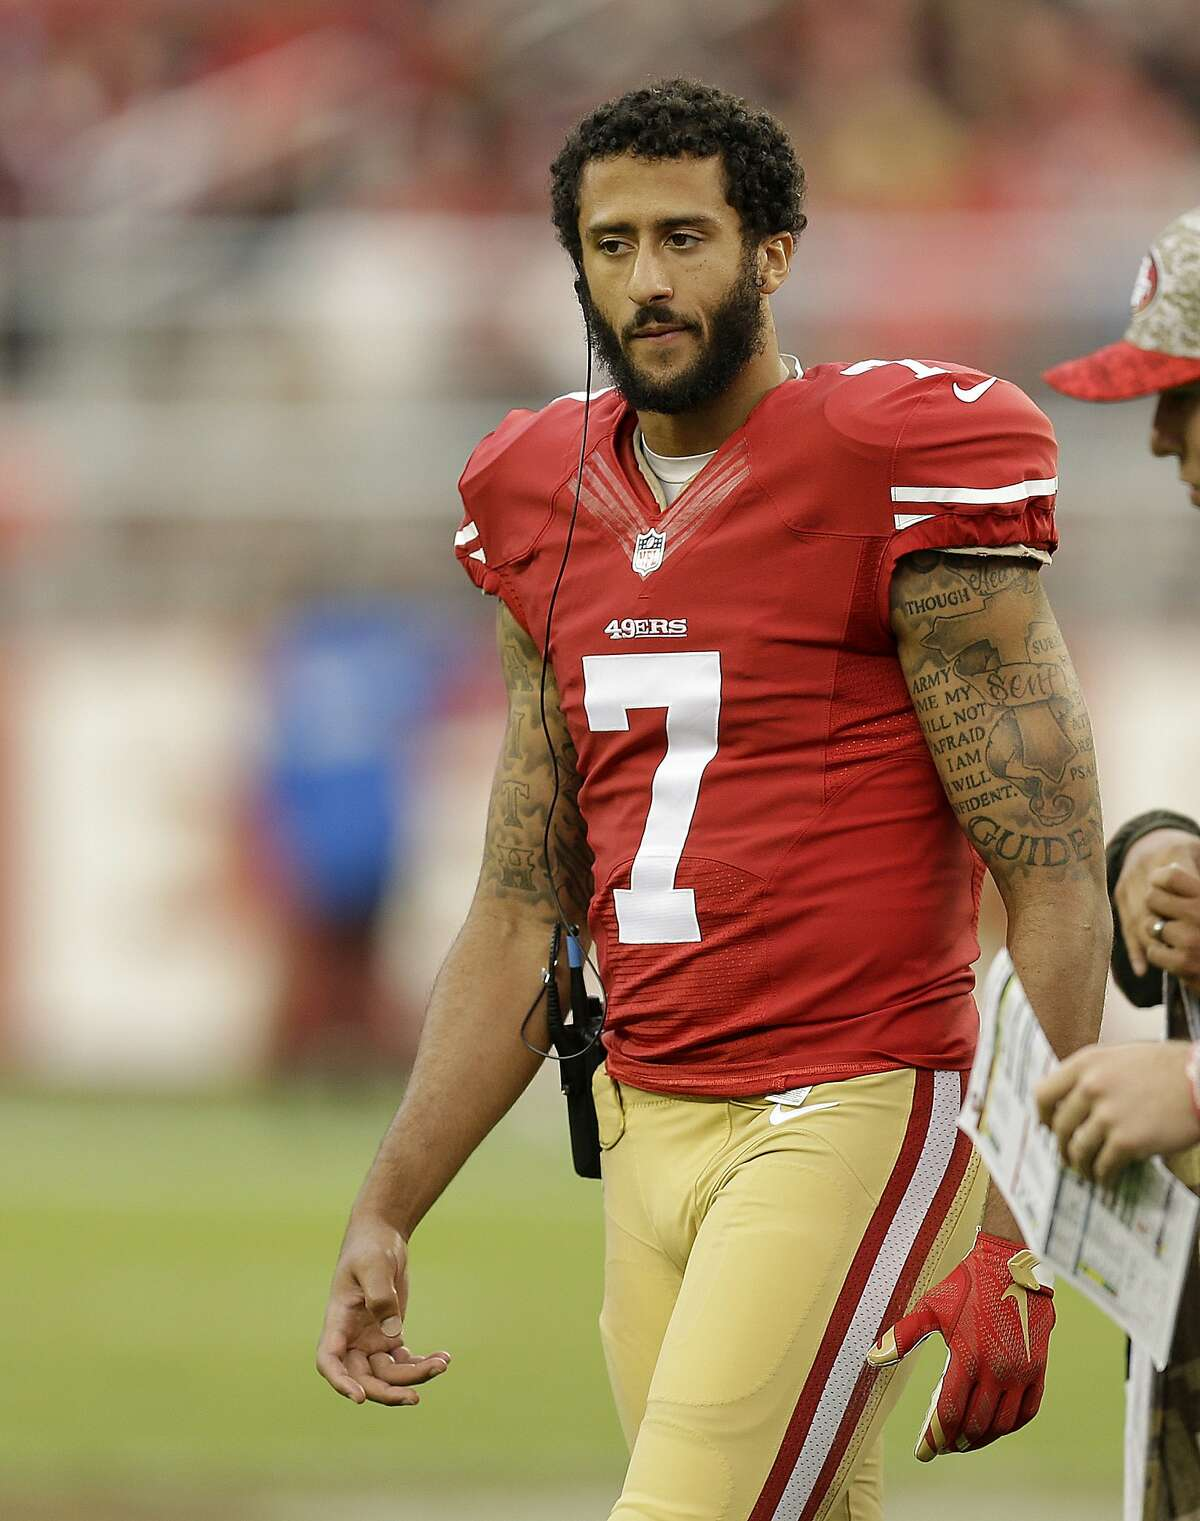 The Broncos have reportedly been working on restructuring Colin Kaepernick's contract.